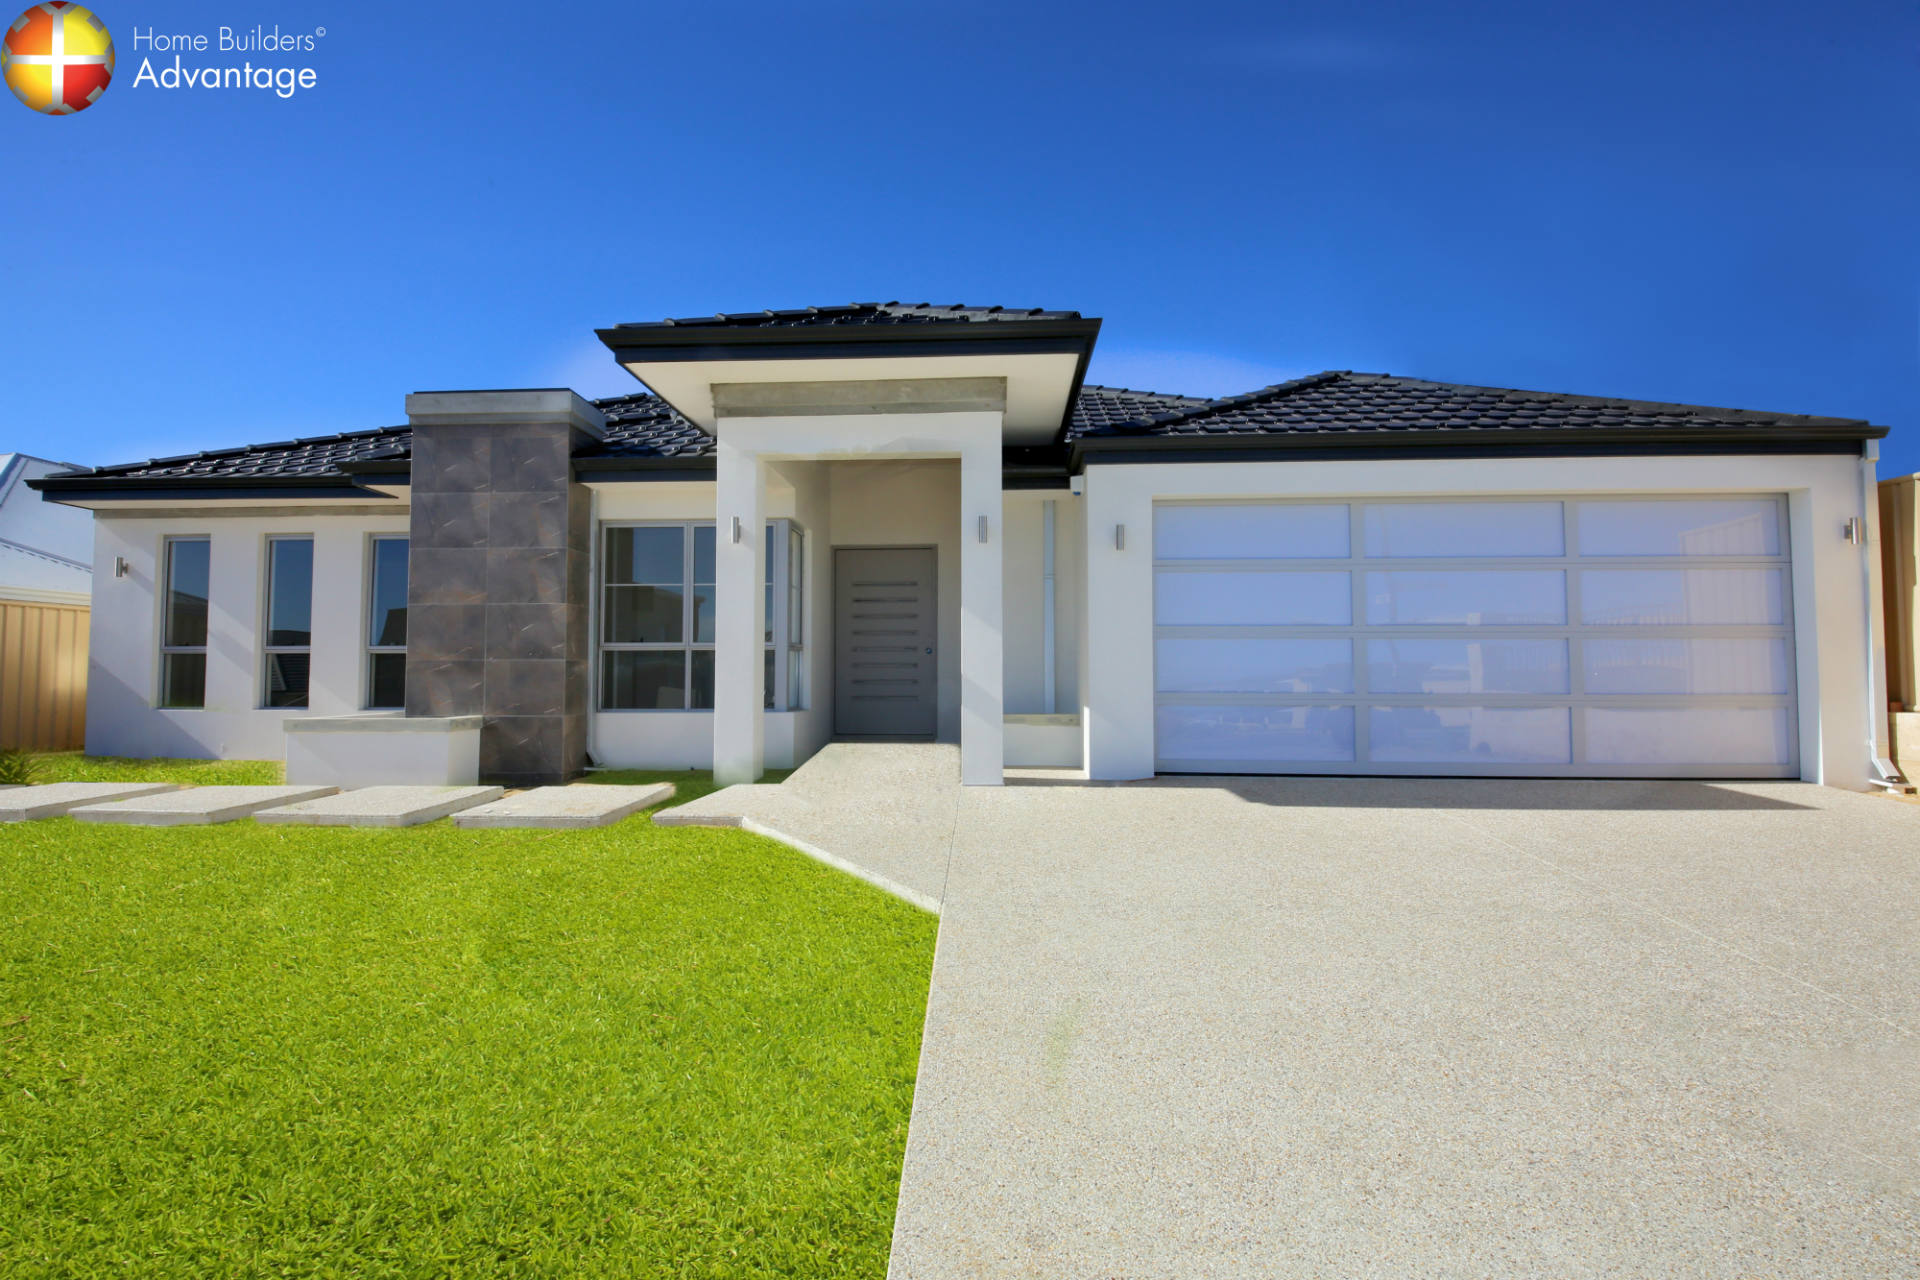 Front Elevation Single Storey Custom Home Design  18m. Beautiful Single Storey Home Designs Perth Ideas   Decorating